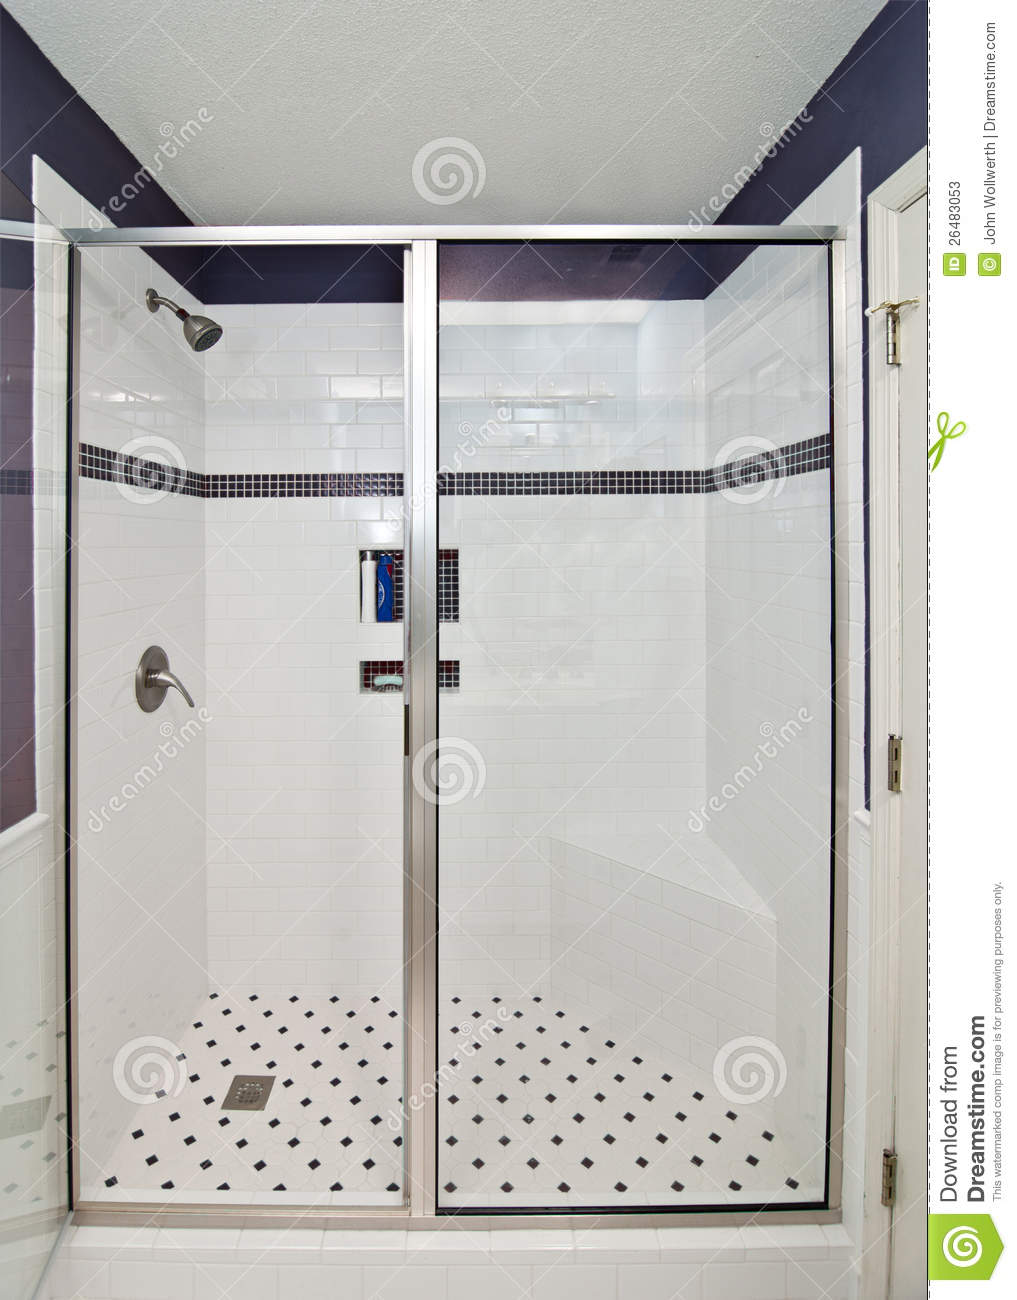 Douche moderne l gante photos stock image 26483053 for Photos douches modernes